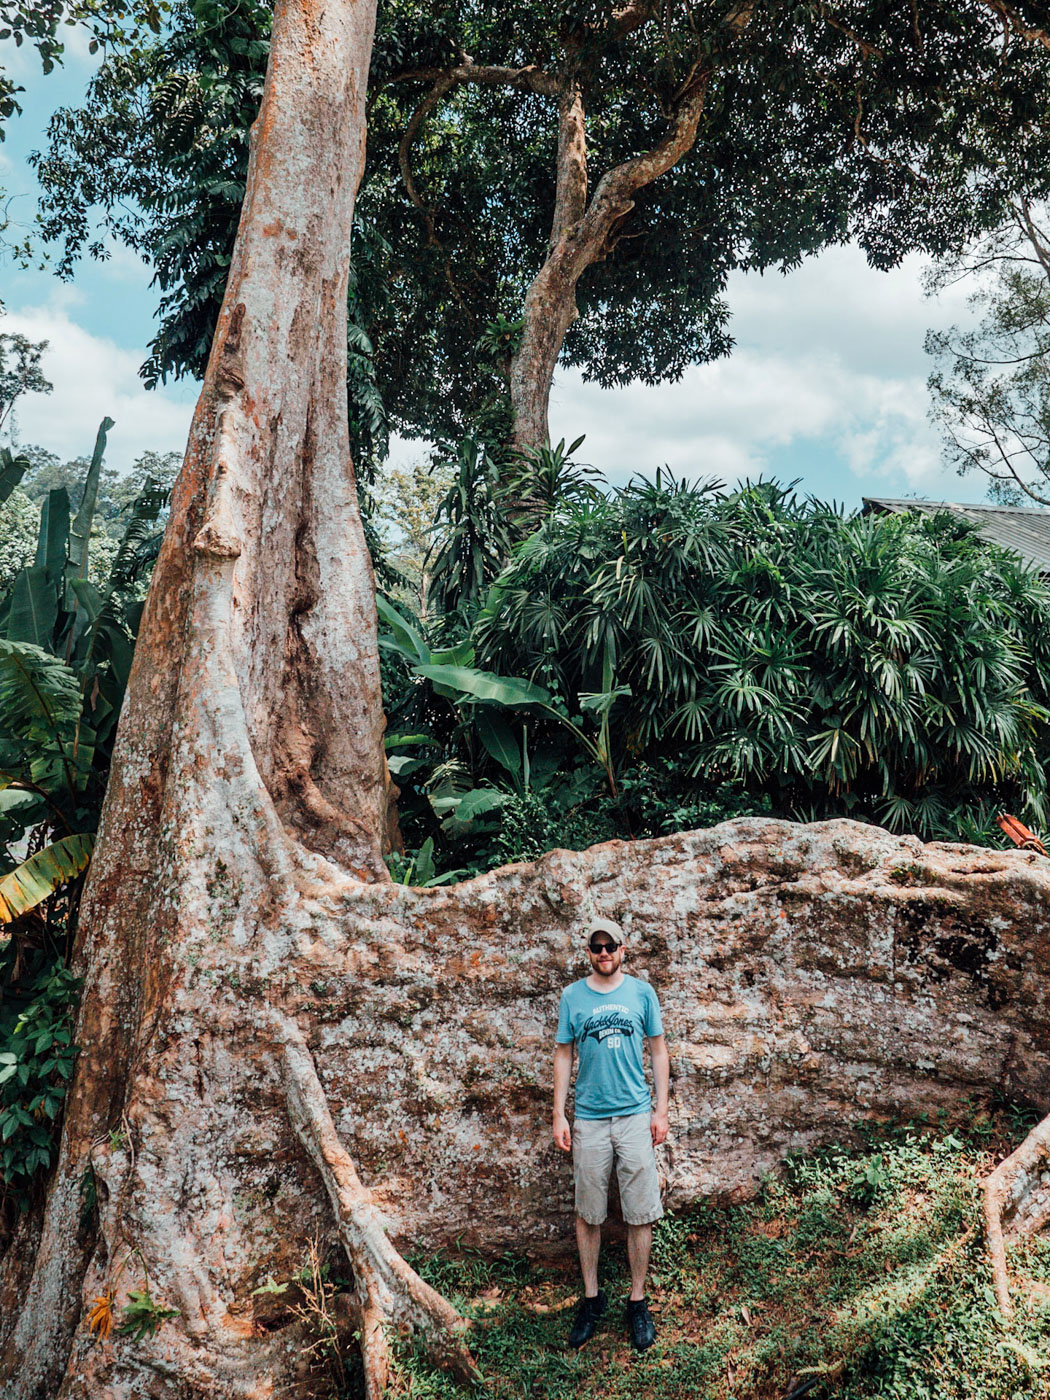 Century-old tree in the Penang Botanical Garden.